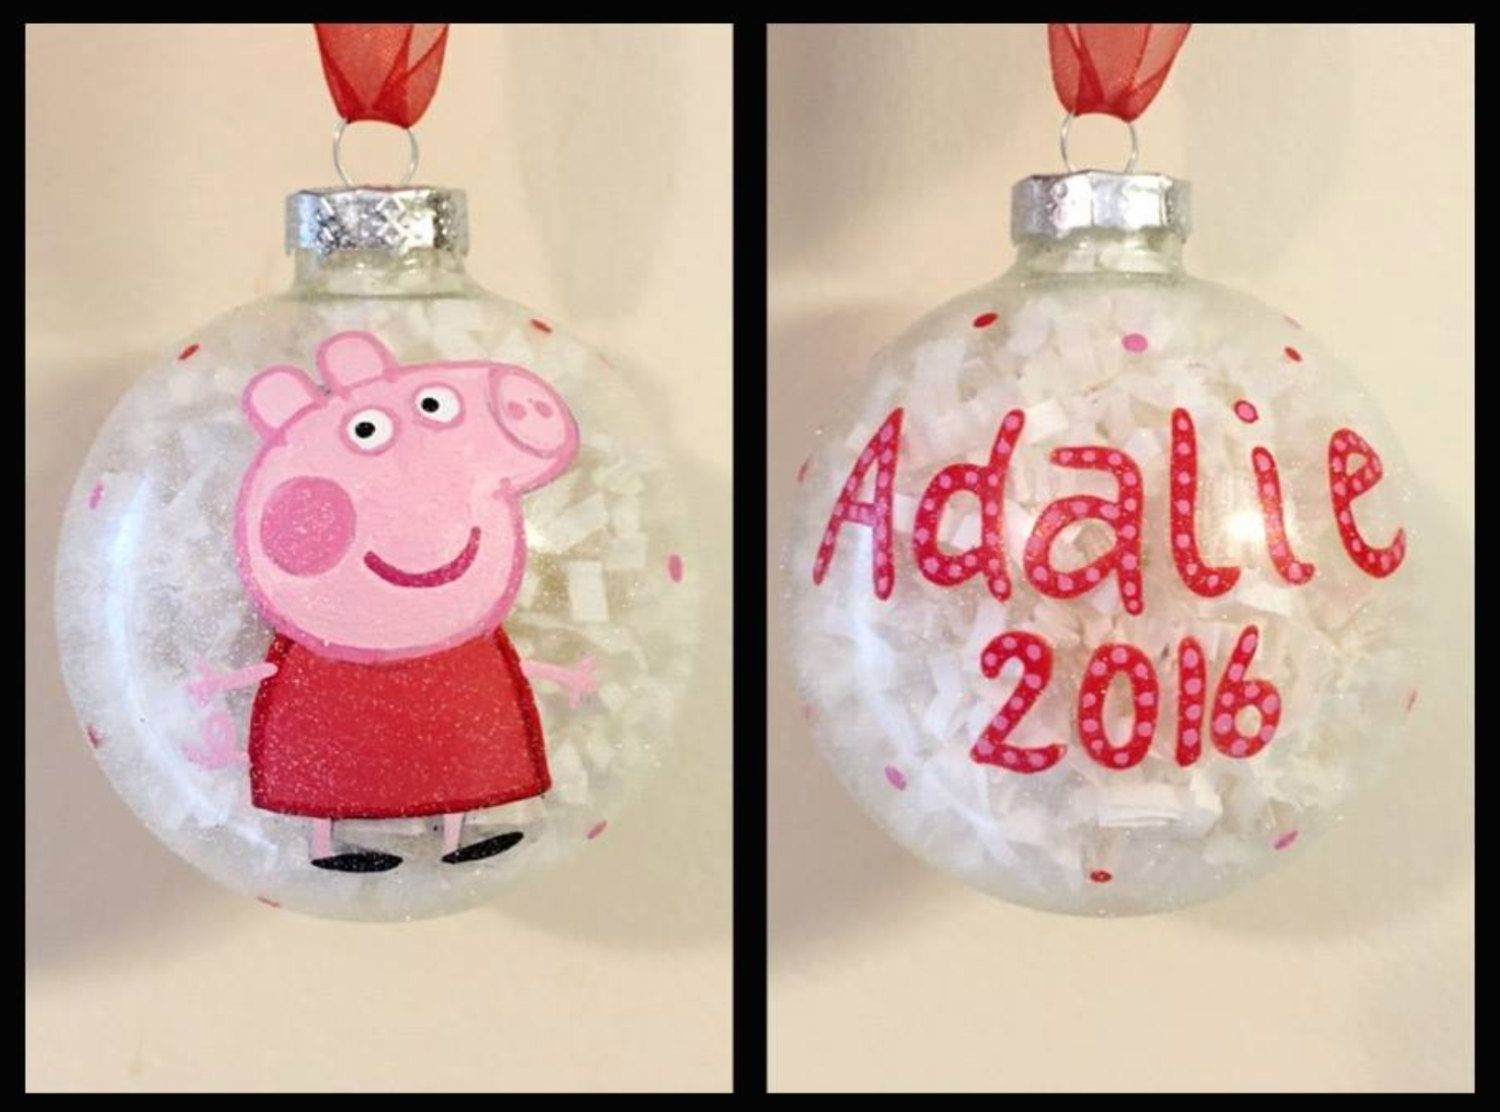 Peppa the Pig Hand Painted Ornament, Peppa the Pig Gifts, Kids Cartoon Ornaments, Glass Ball Christmas Ornament, Christmas Decor for Kids by WattsGoodArtistry on Etsy